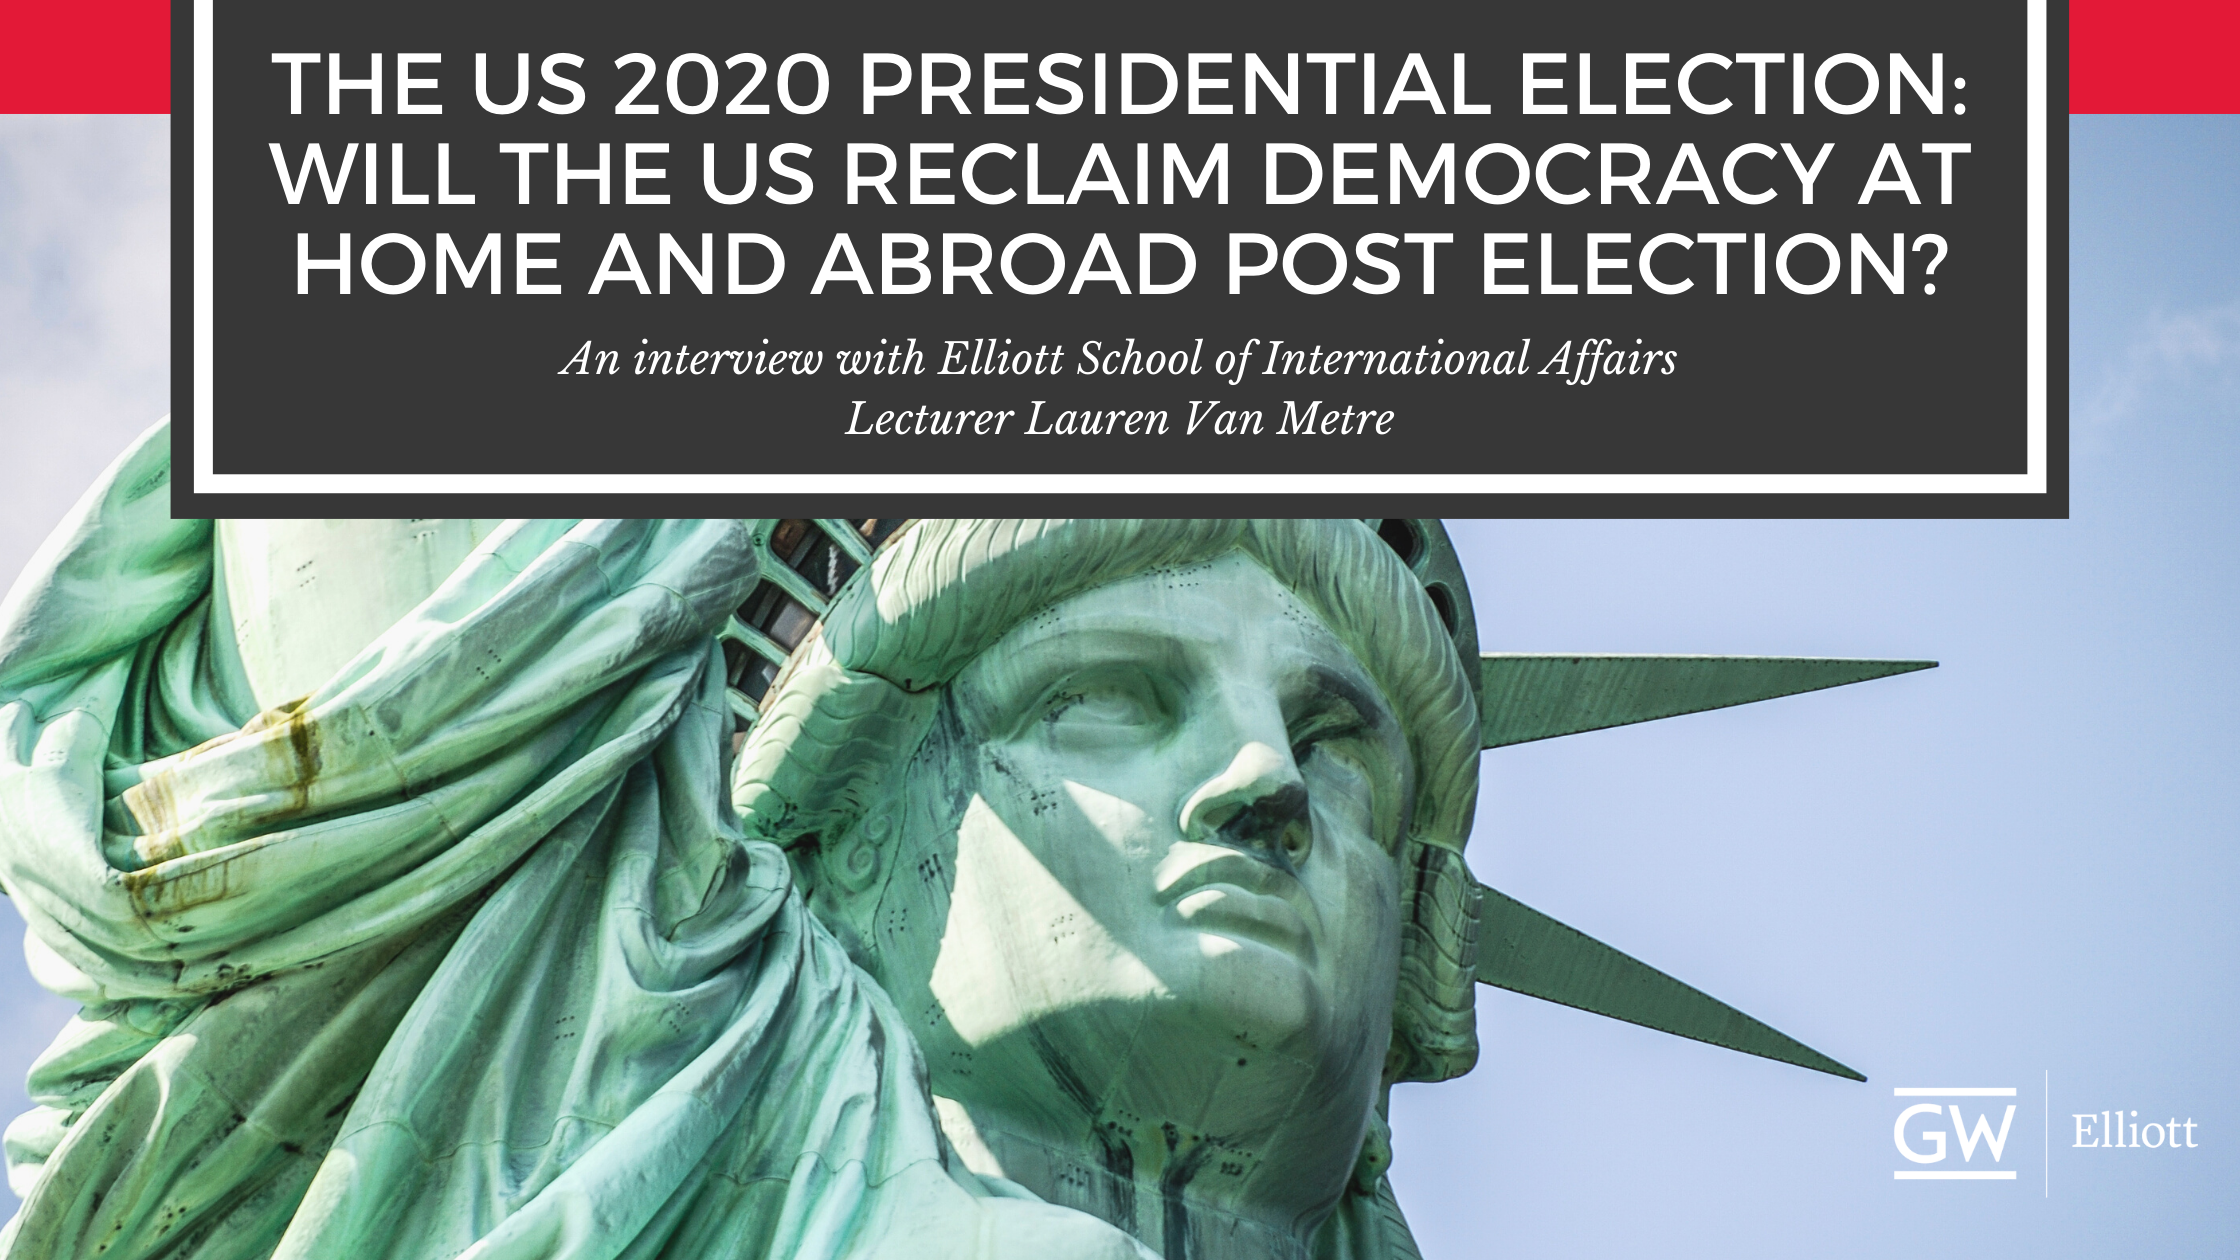 The Us 2020 Presidential Election Will The Us Reclaim Democracy At Home And Abroad Post Election Elliott School Office Of Graduate Admissions